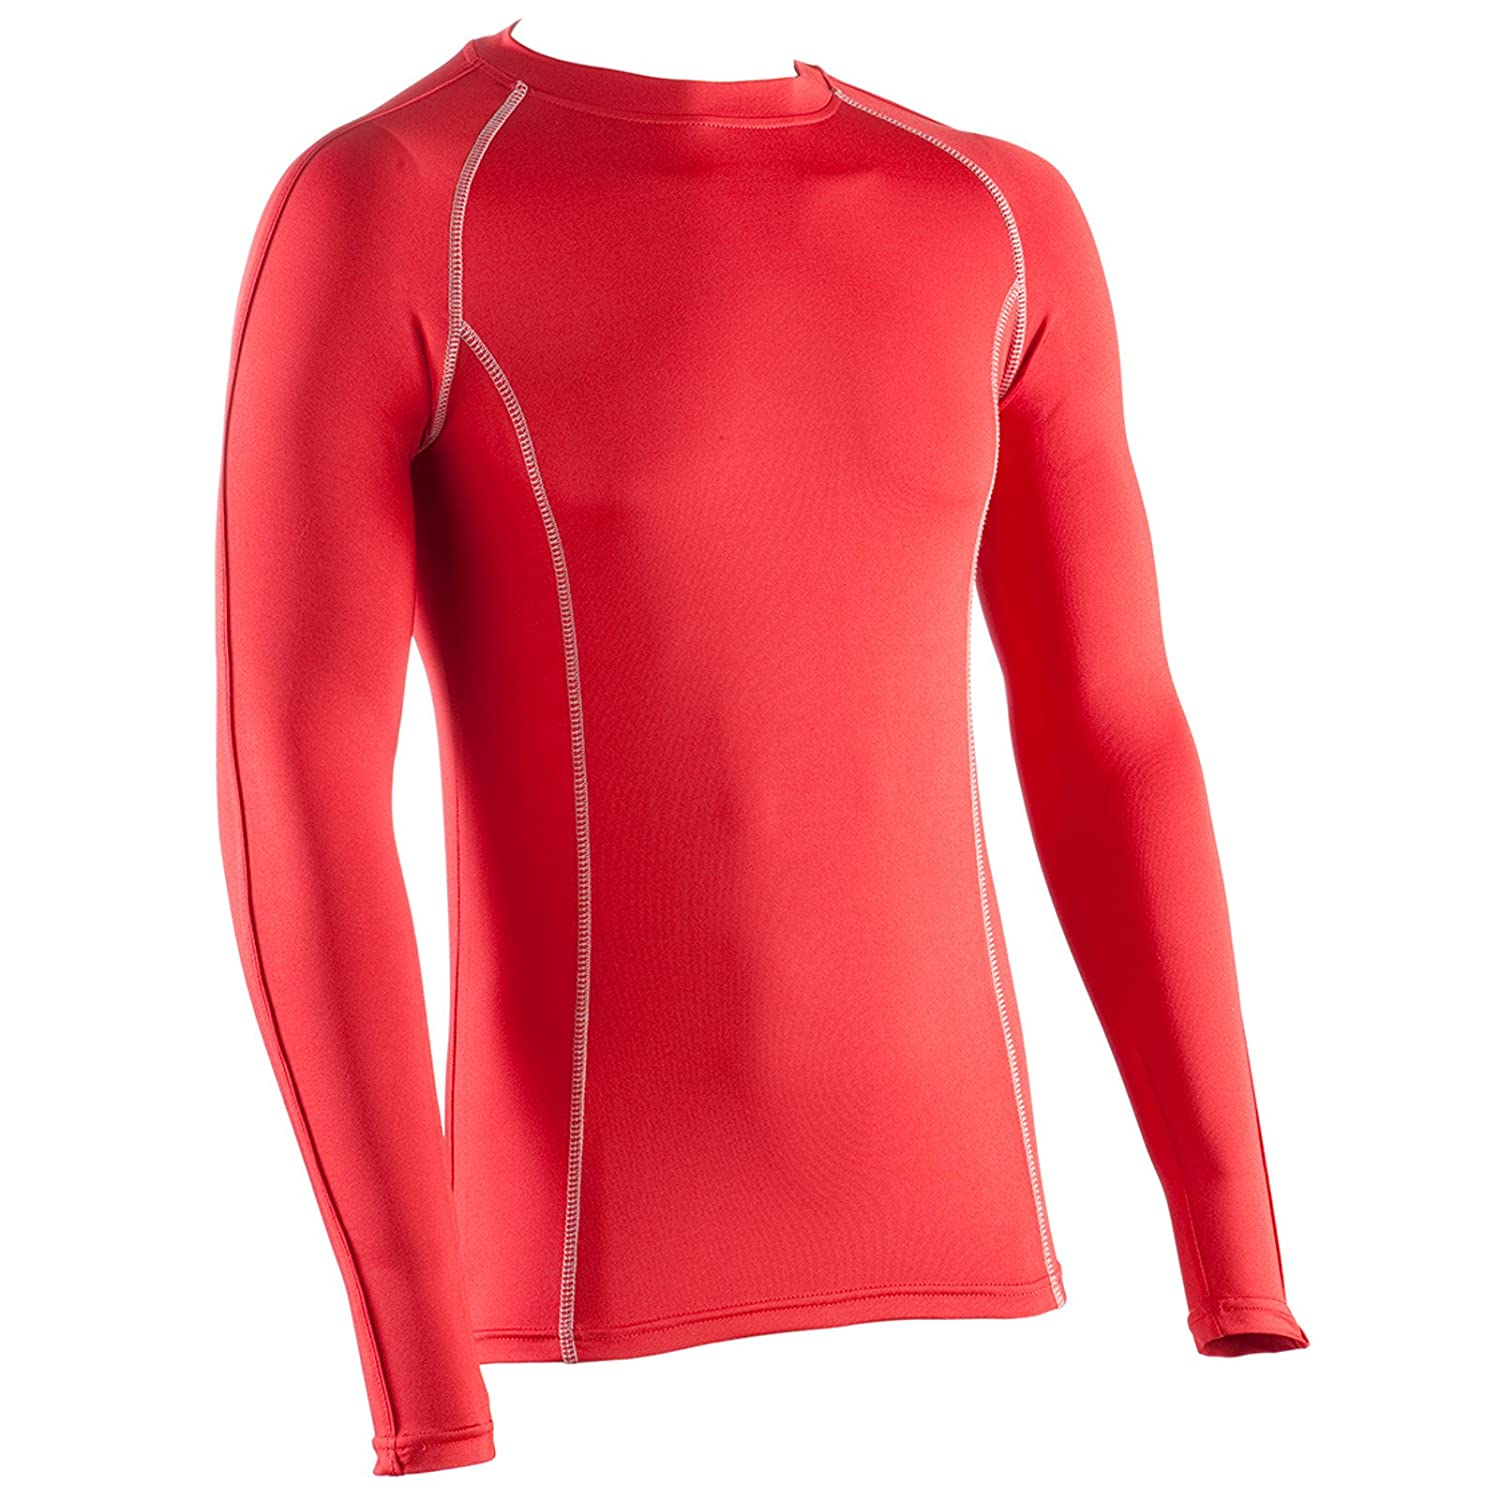 i-sports Base Layer Top Junior Unisex Sport Compression Performance Fit Tops